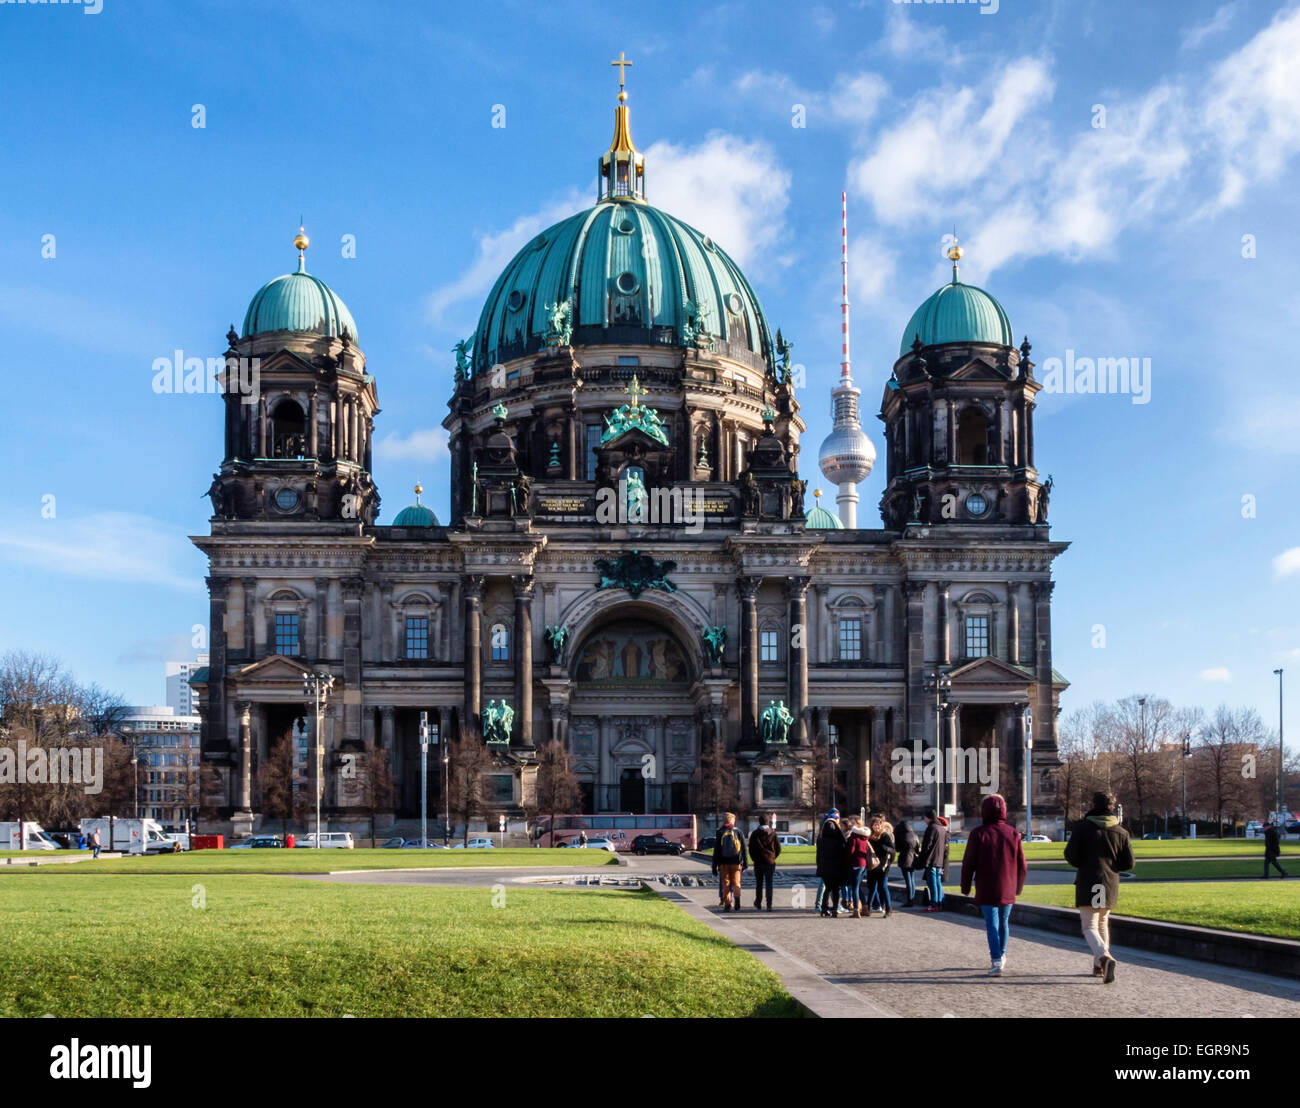 berlin dome berliner dom berlin cathedral protestant evangelical stock photo royalty free. Black Bedroom Furniture Sets. Home Design Ideas